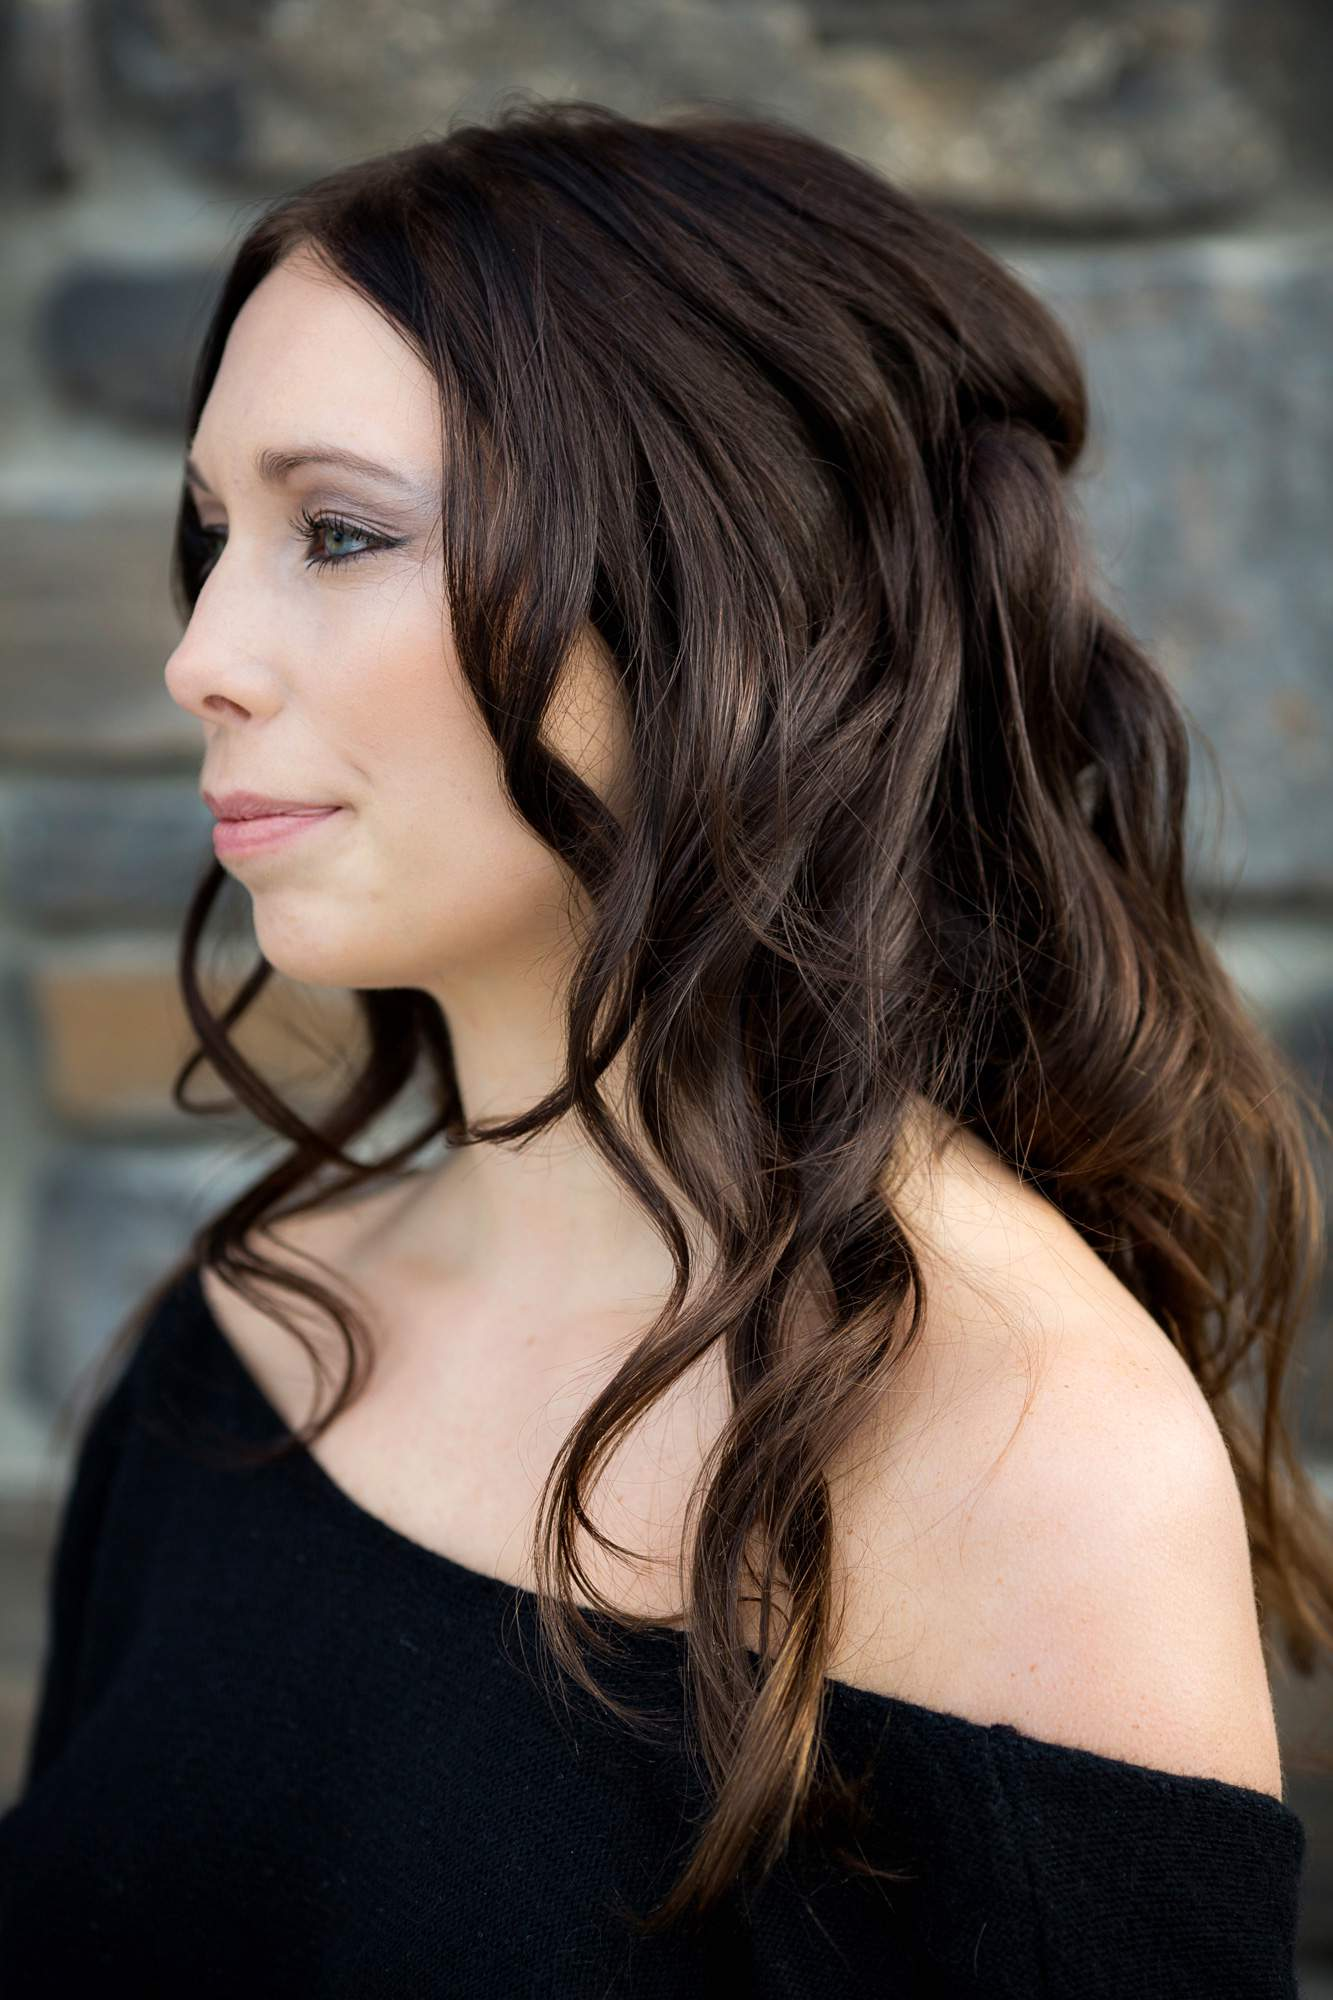 Rapunzels Hair & Makeup - side profile - Salon Services - Rapunzels Salon and Spa - Canmore